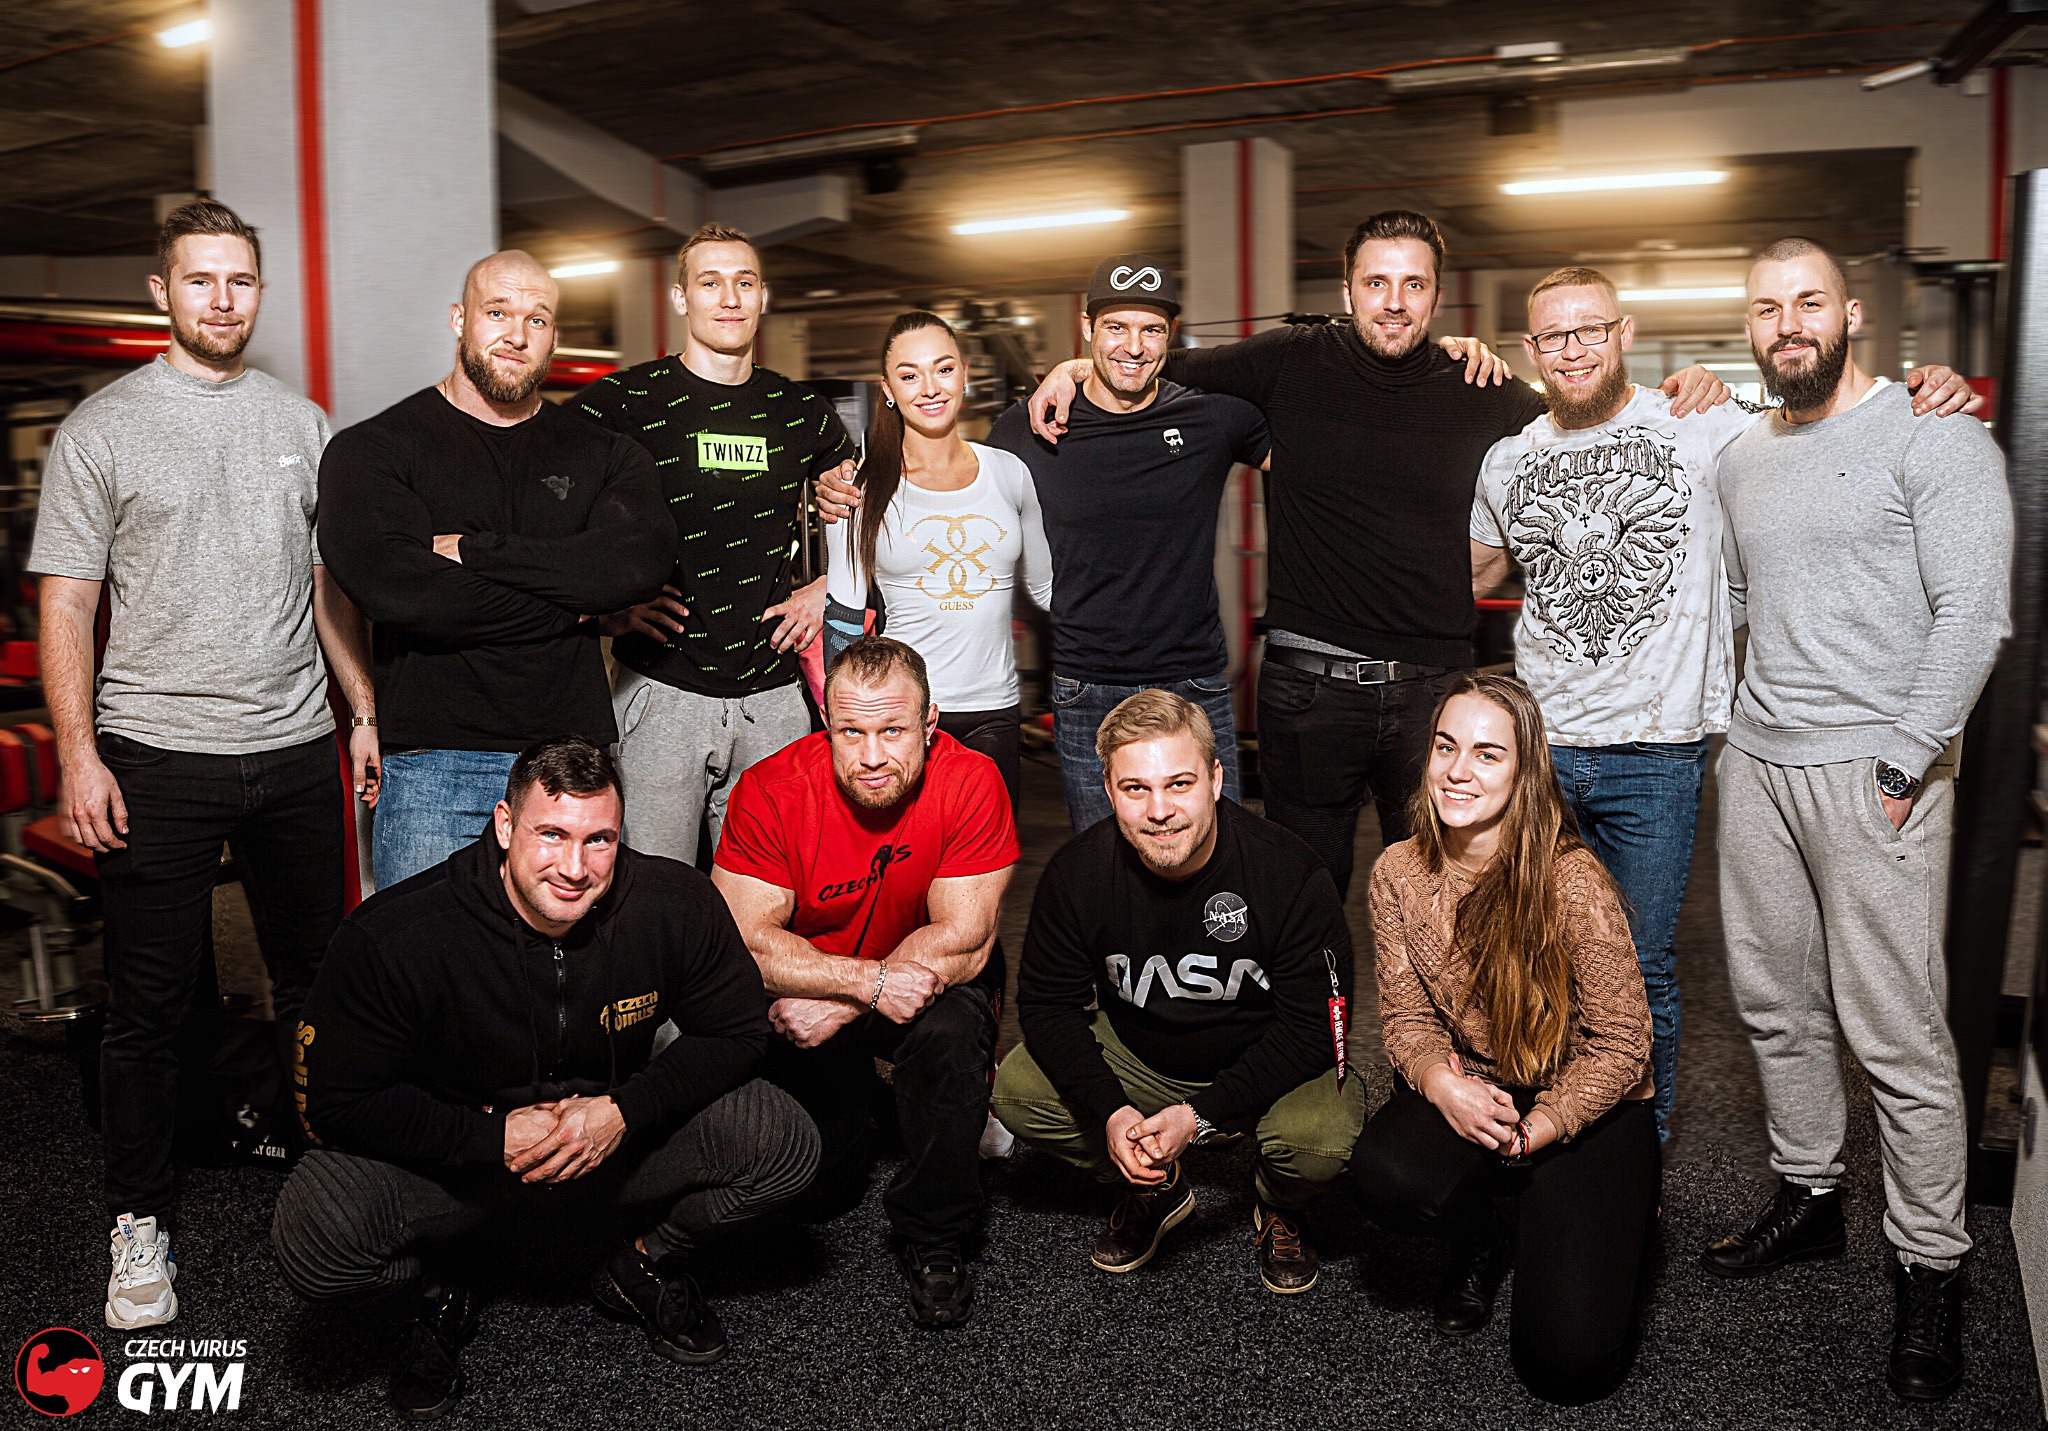 czech virus team posilovna gym fitness